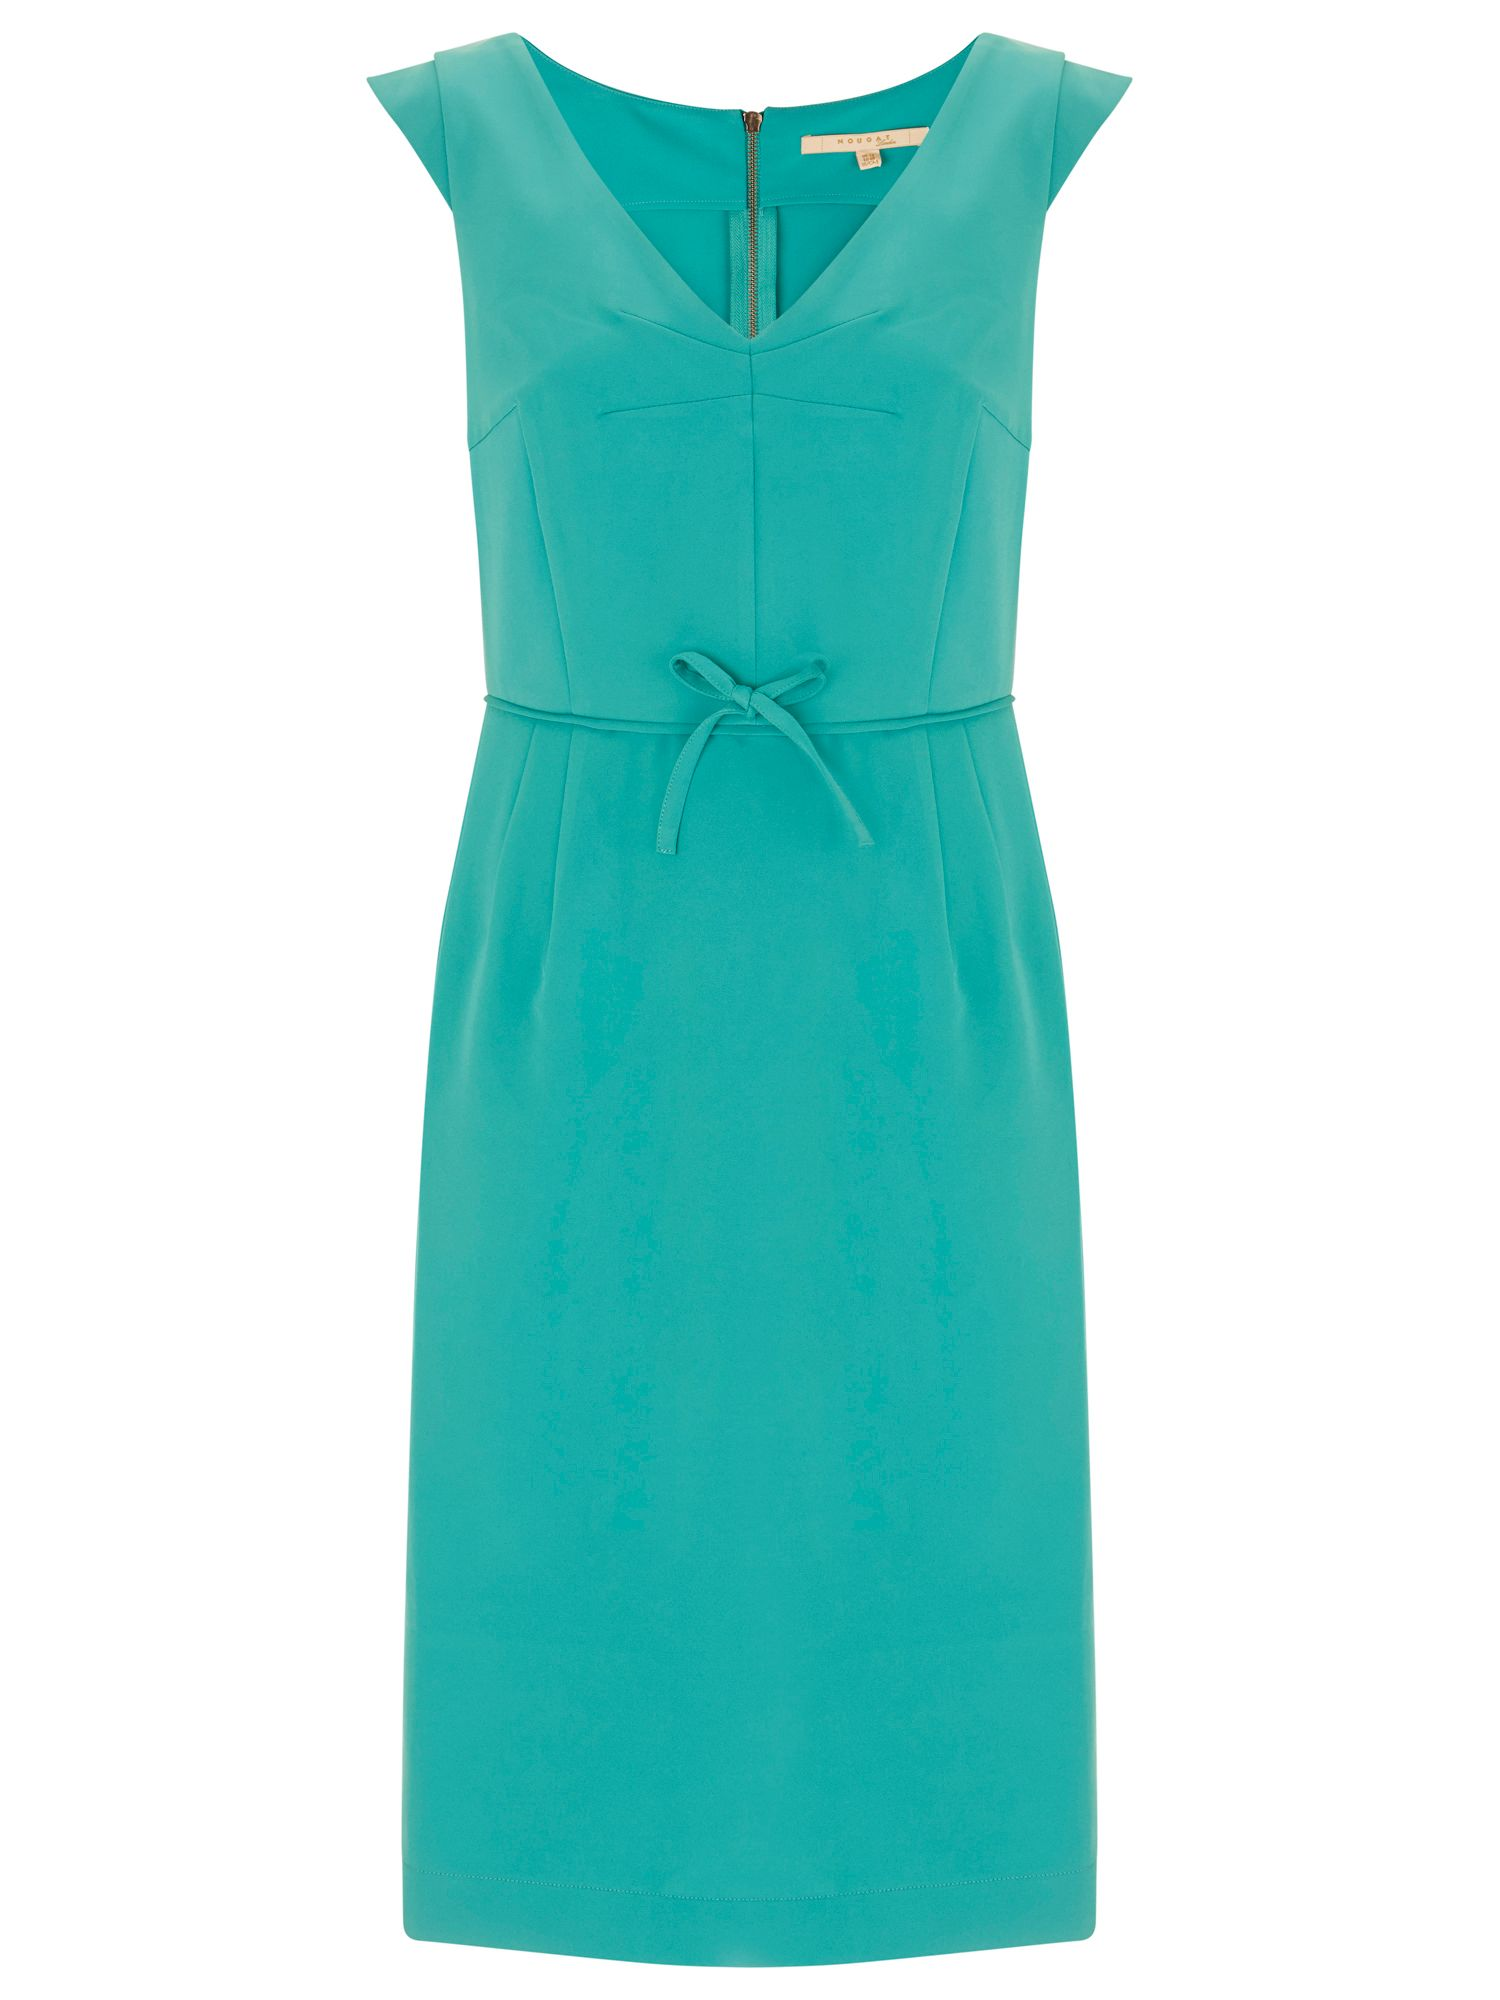 Nougat London Chelsea Cap Sleeve Dress, Green